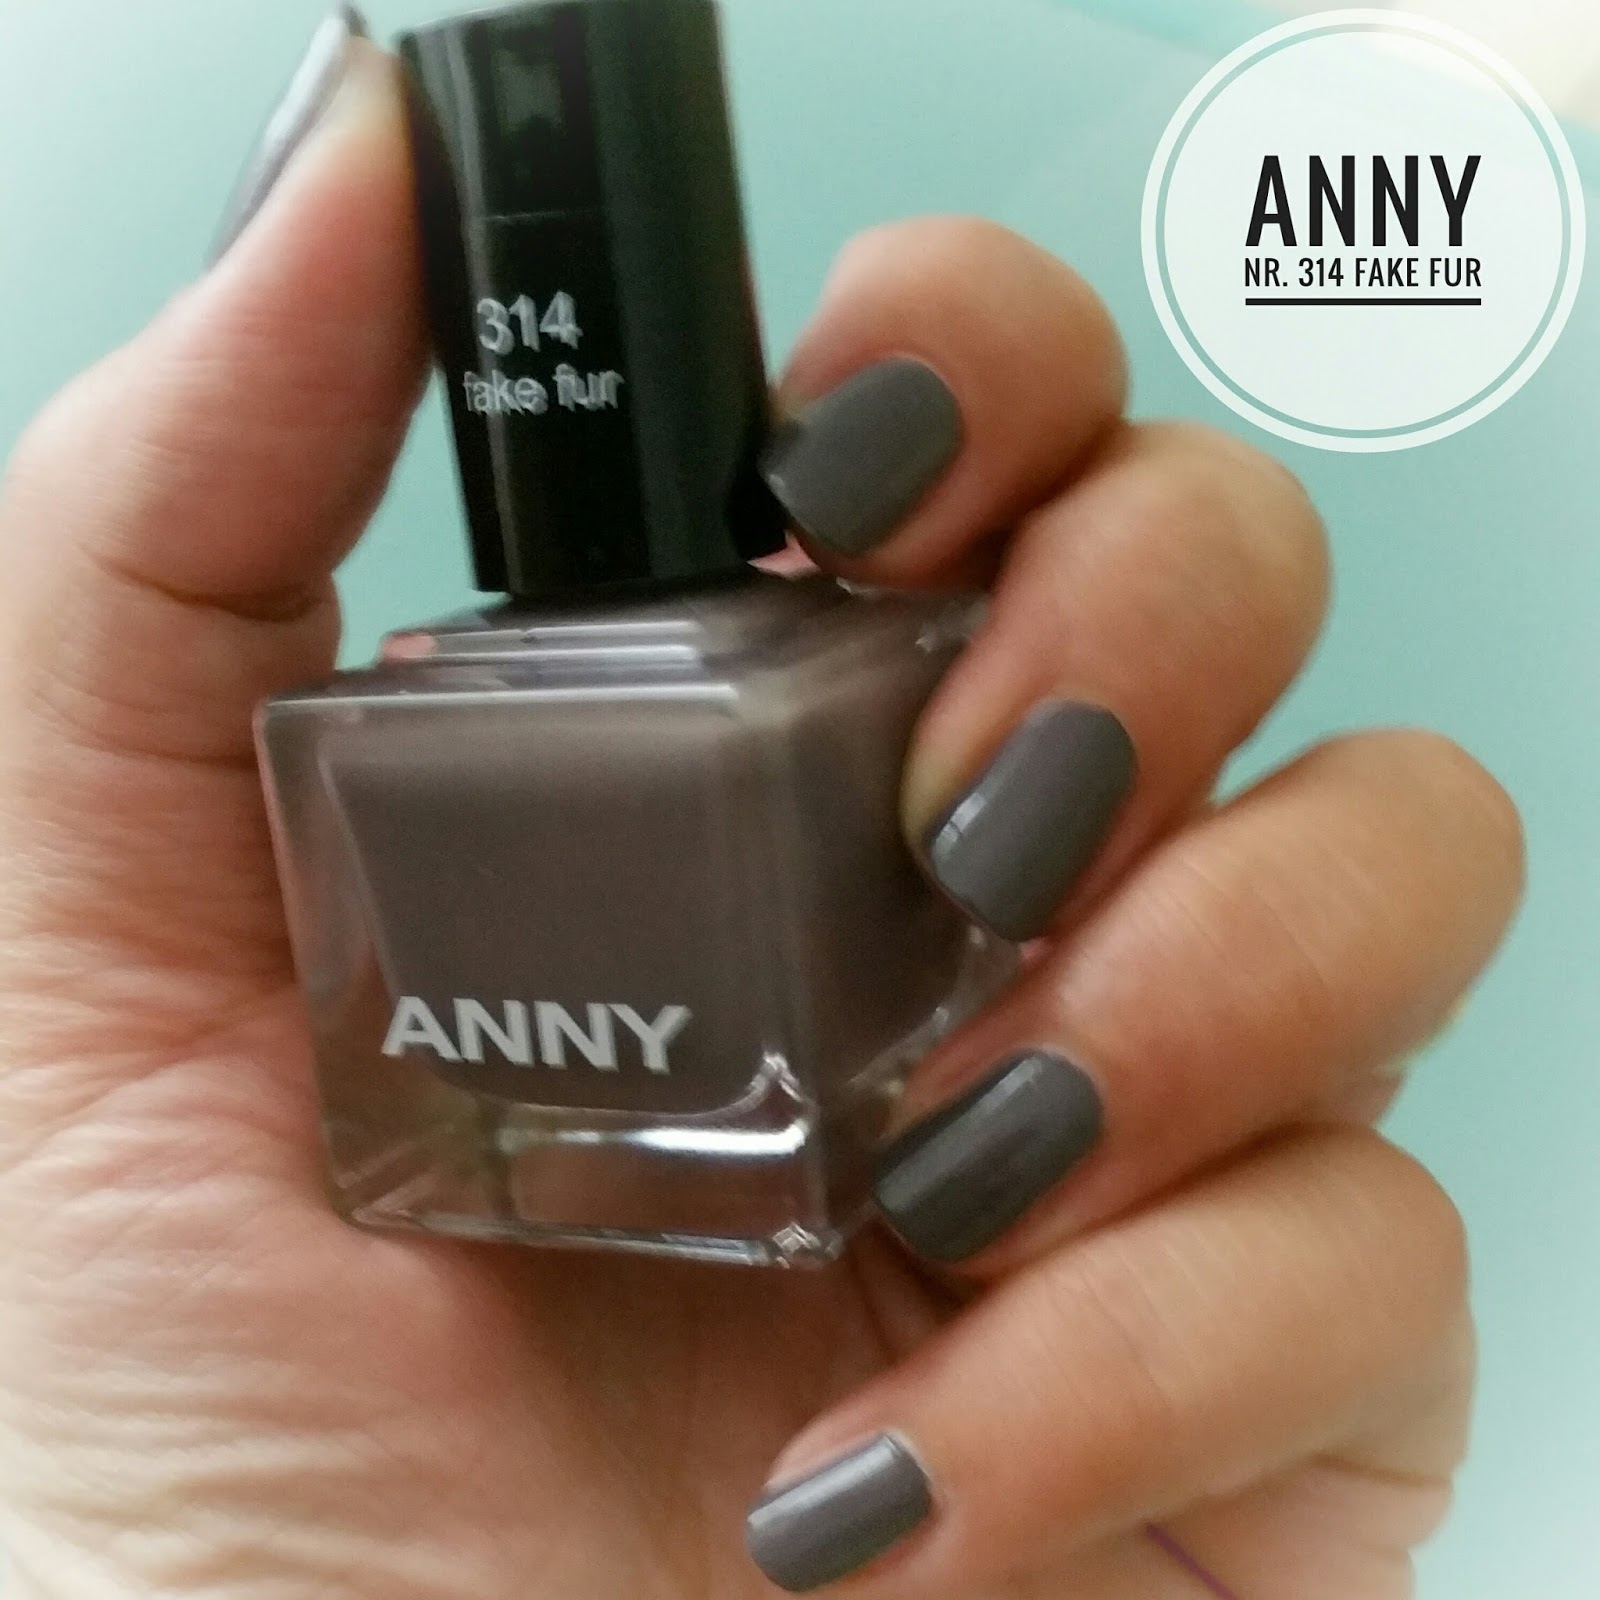 FLYINGHOUSEWIVES: ANNY Nagellacke - diverse Farben im Test